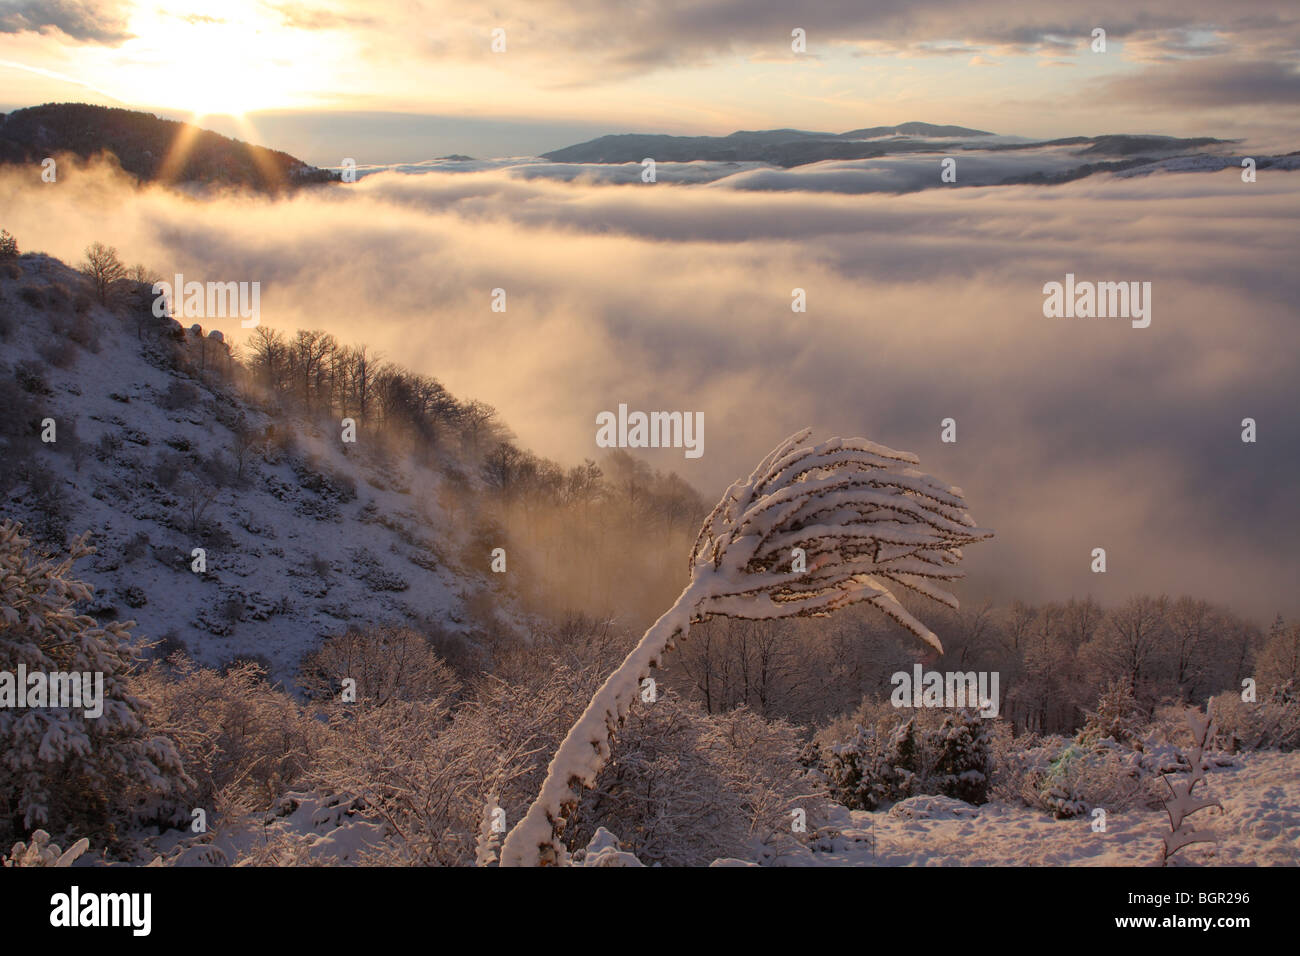 Sunrise in Central Balkan National Park (Stara planina), nature protected area, Bulgaria, Europe - Stock Image